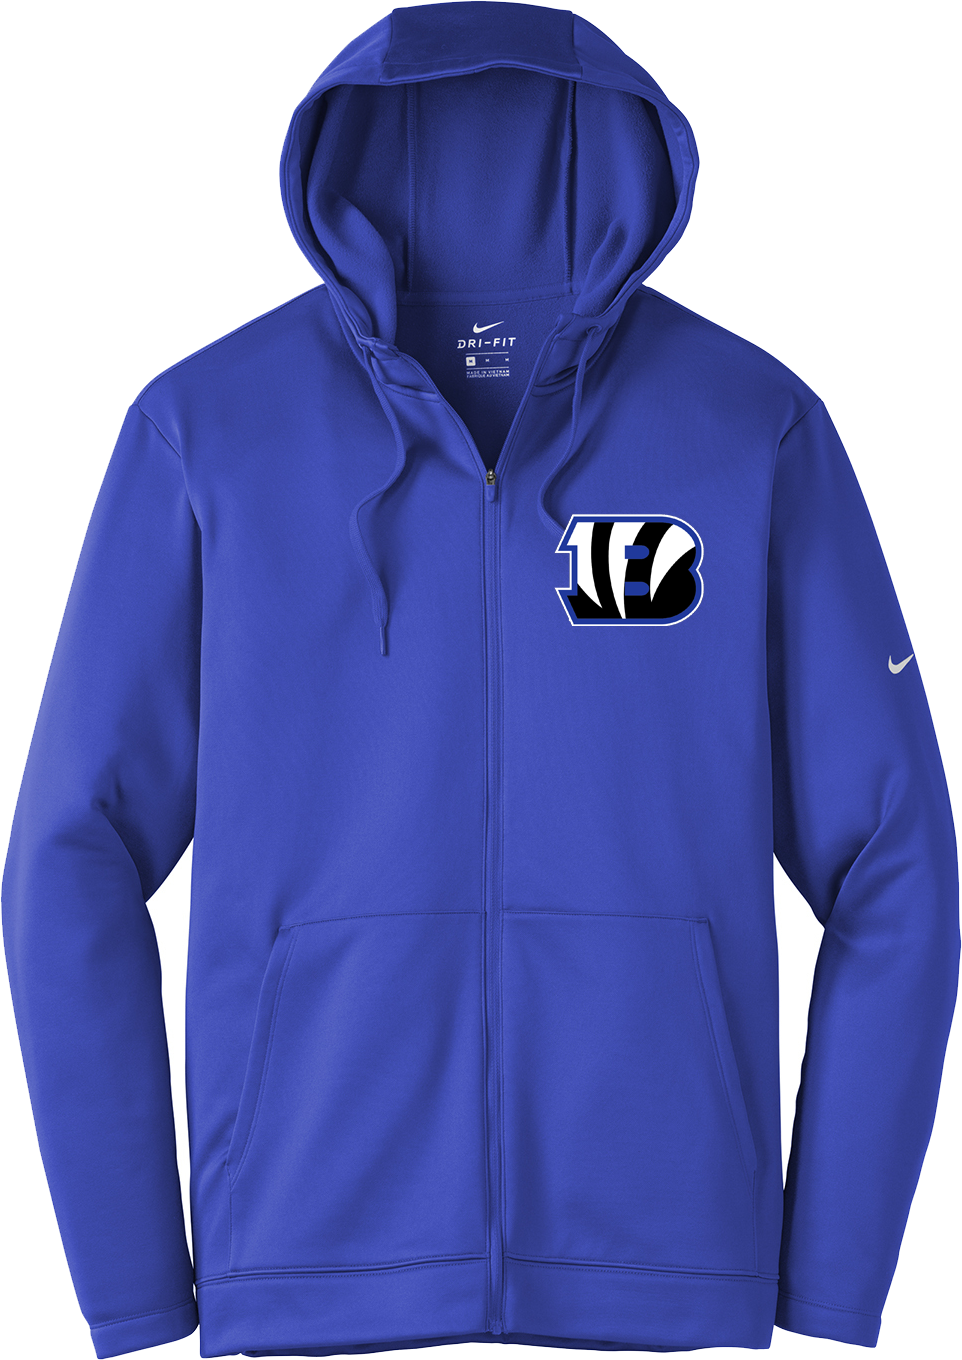 Blake Lacrosse Nike Royal Blue Full-Zip Hoodie